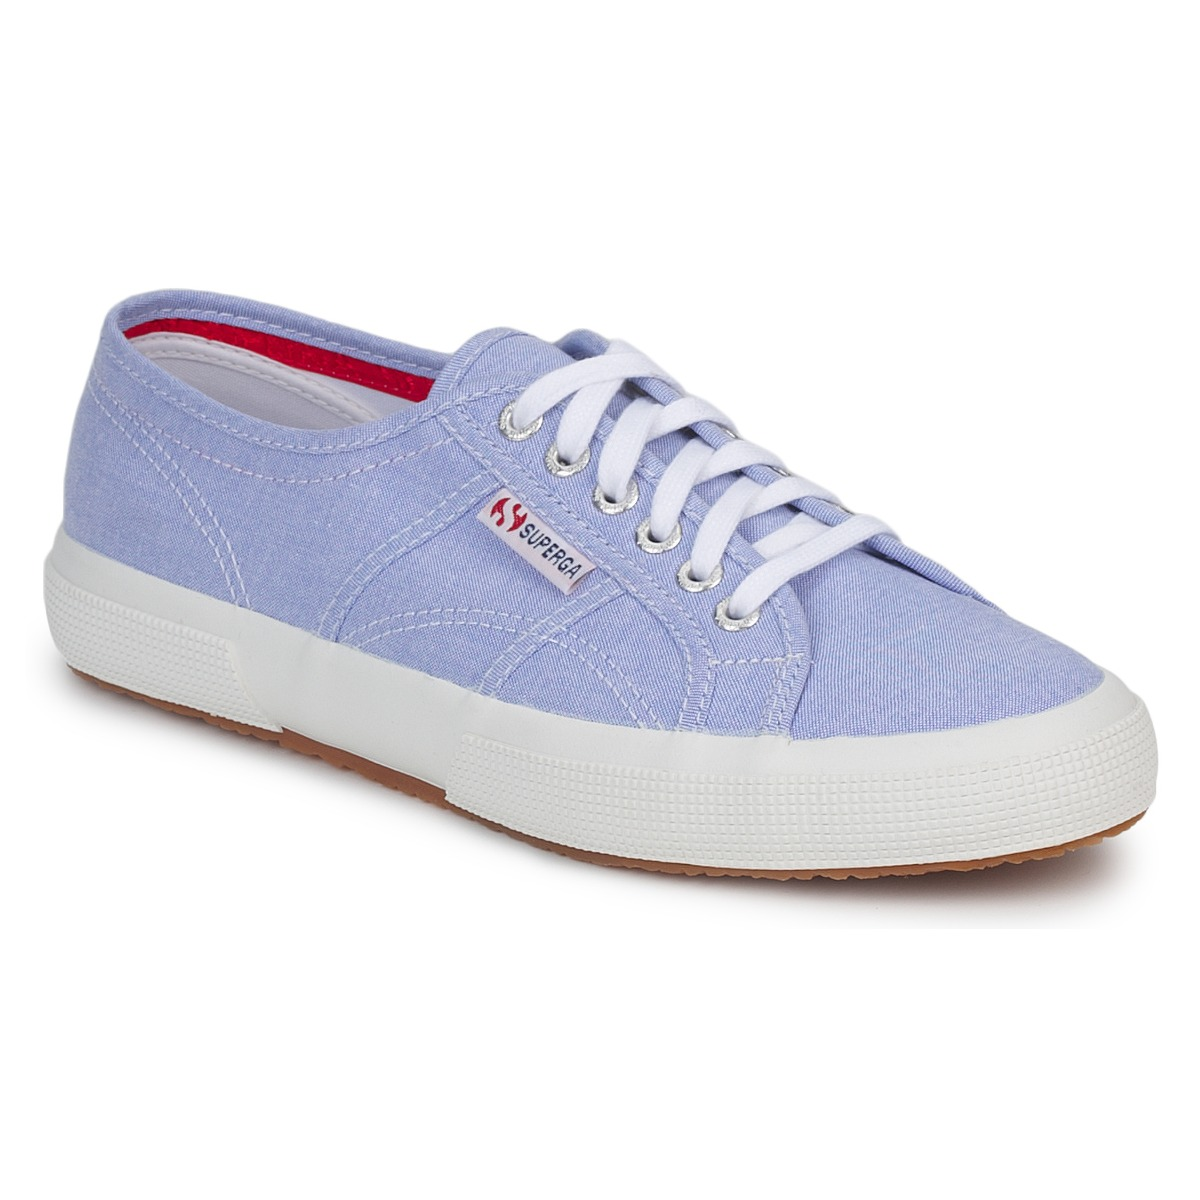 Superga 2750 COTUSHIRT Blue / Cream / Lt